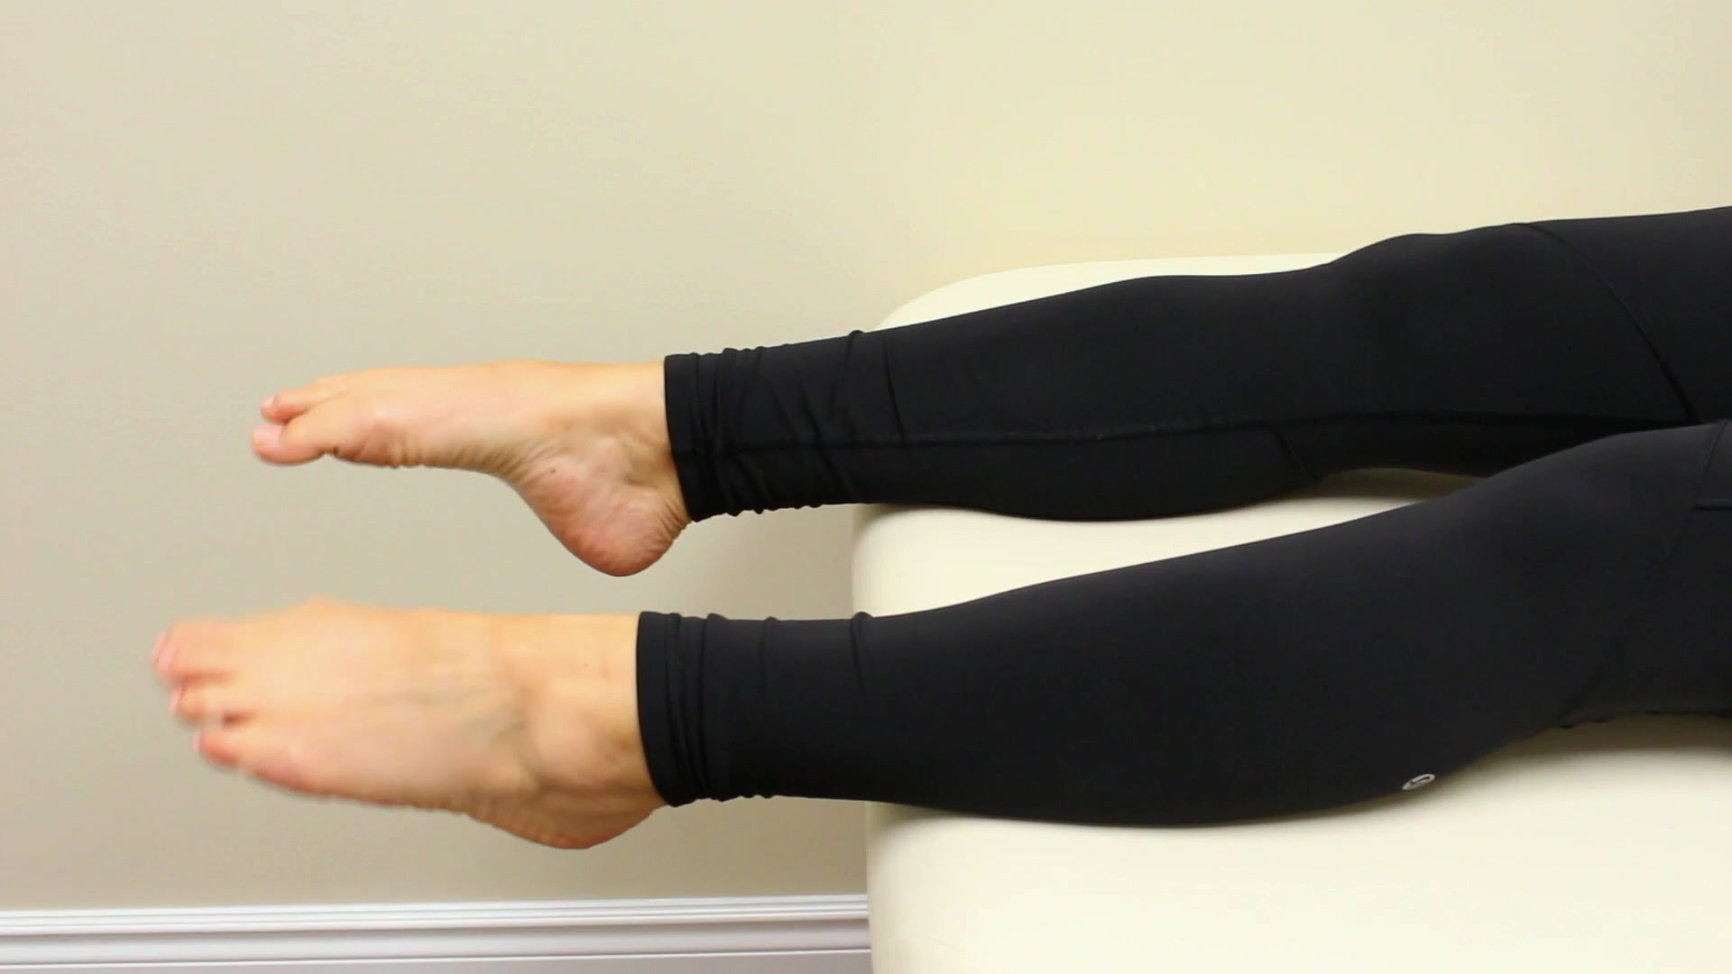 Ankle rotations